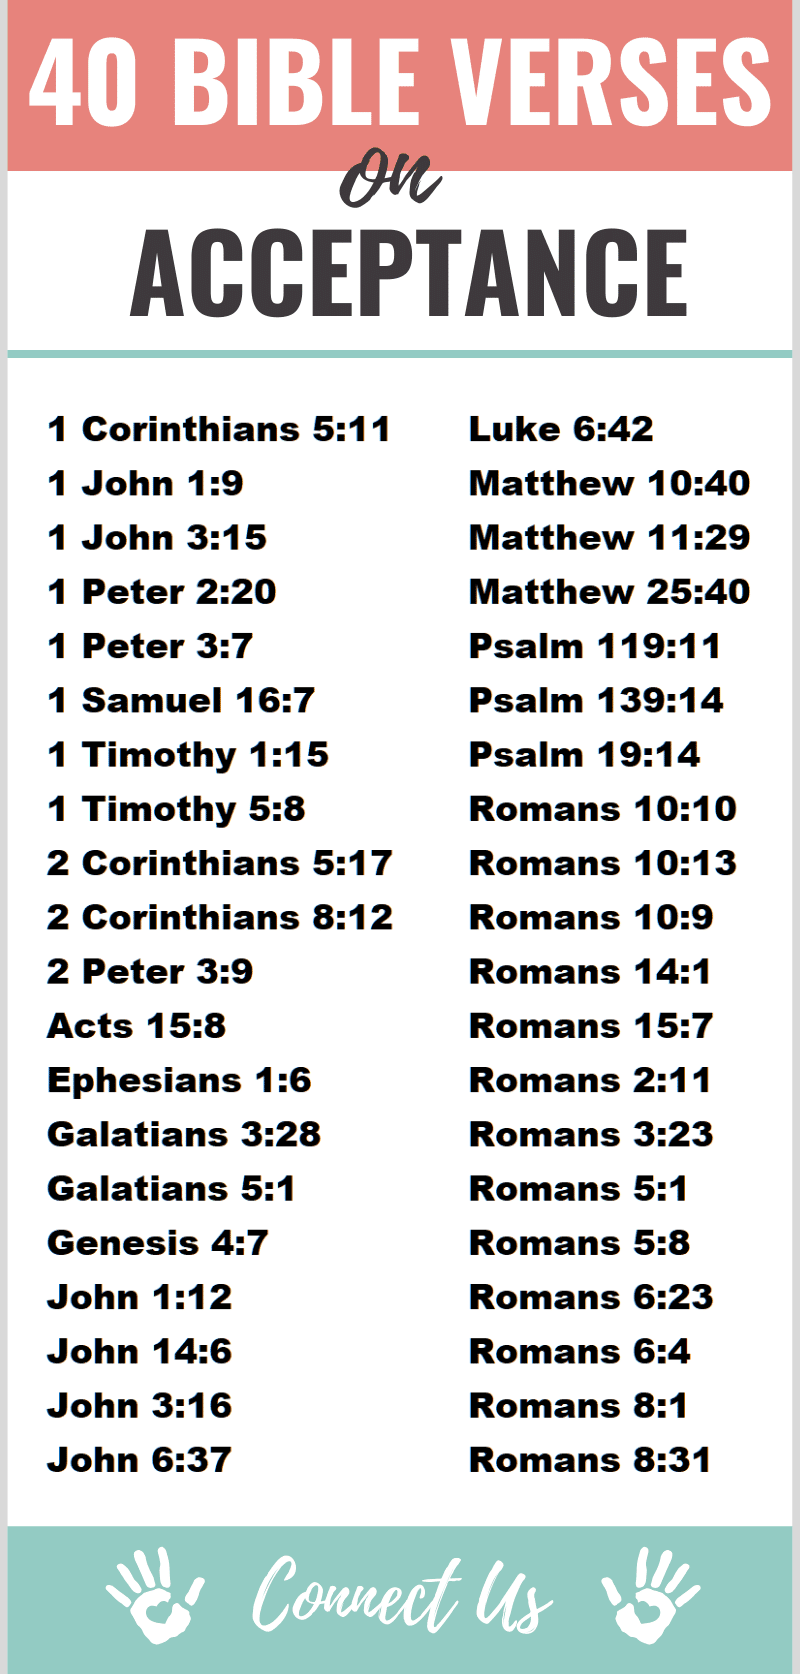 Bible Verses on Acceptance